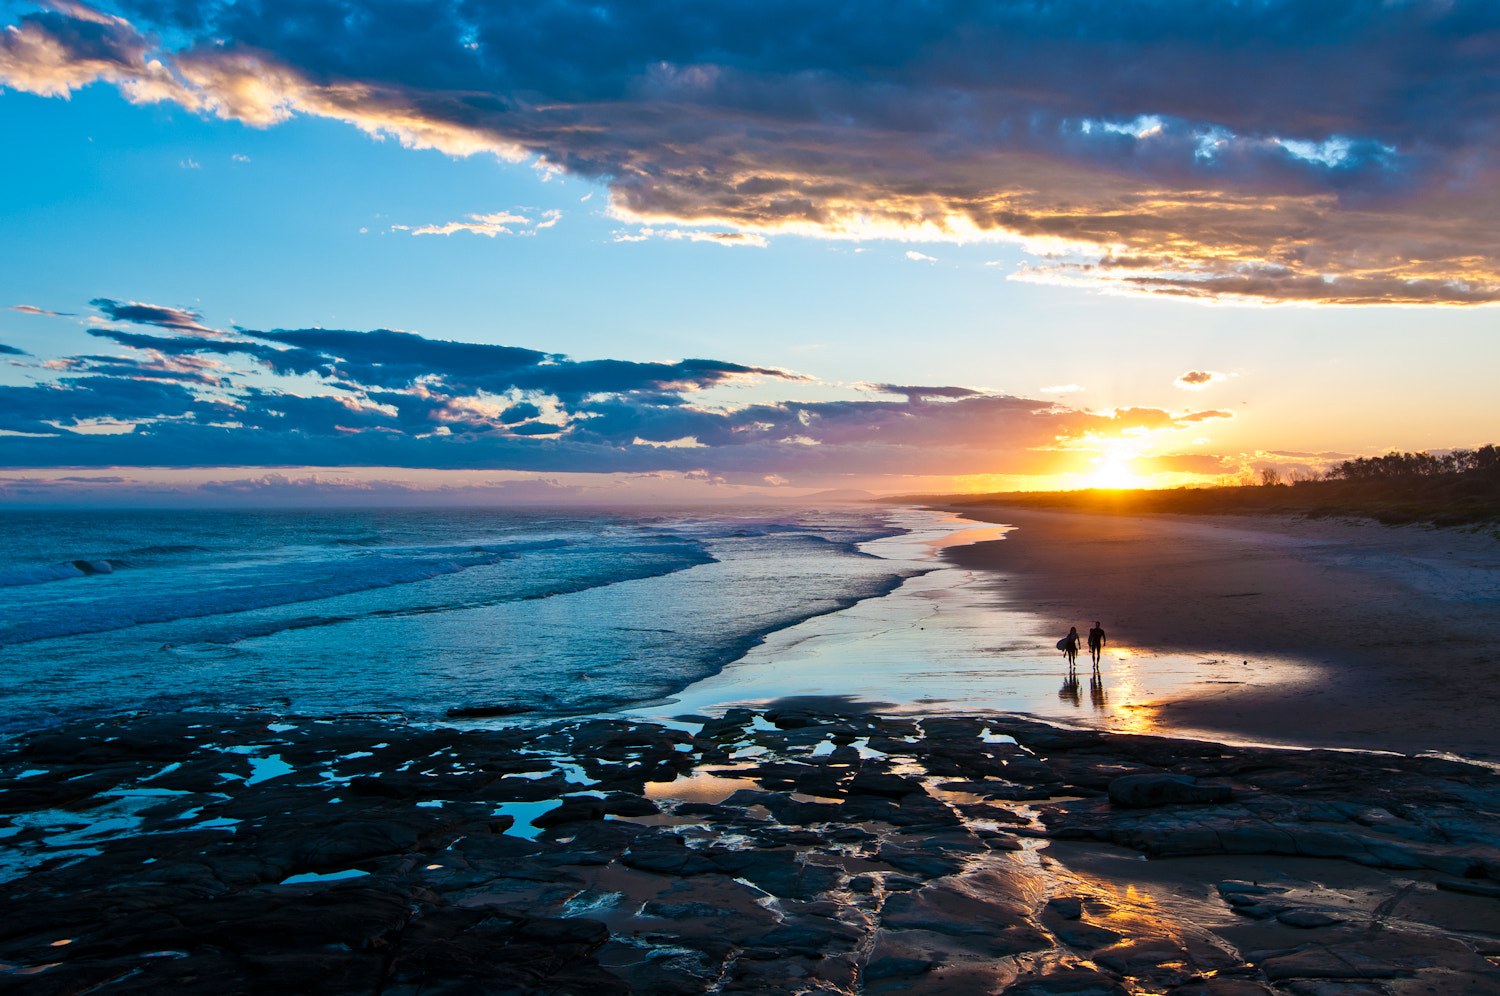 Photograph Sunset Surfers by Kimmo Savolainen on 500px